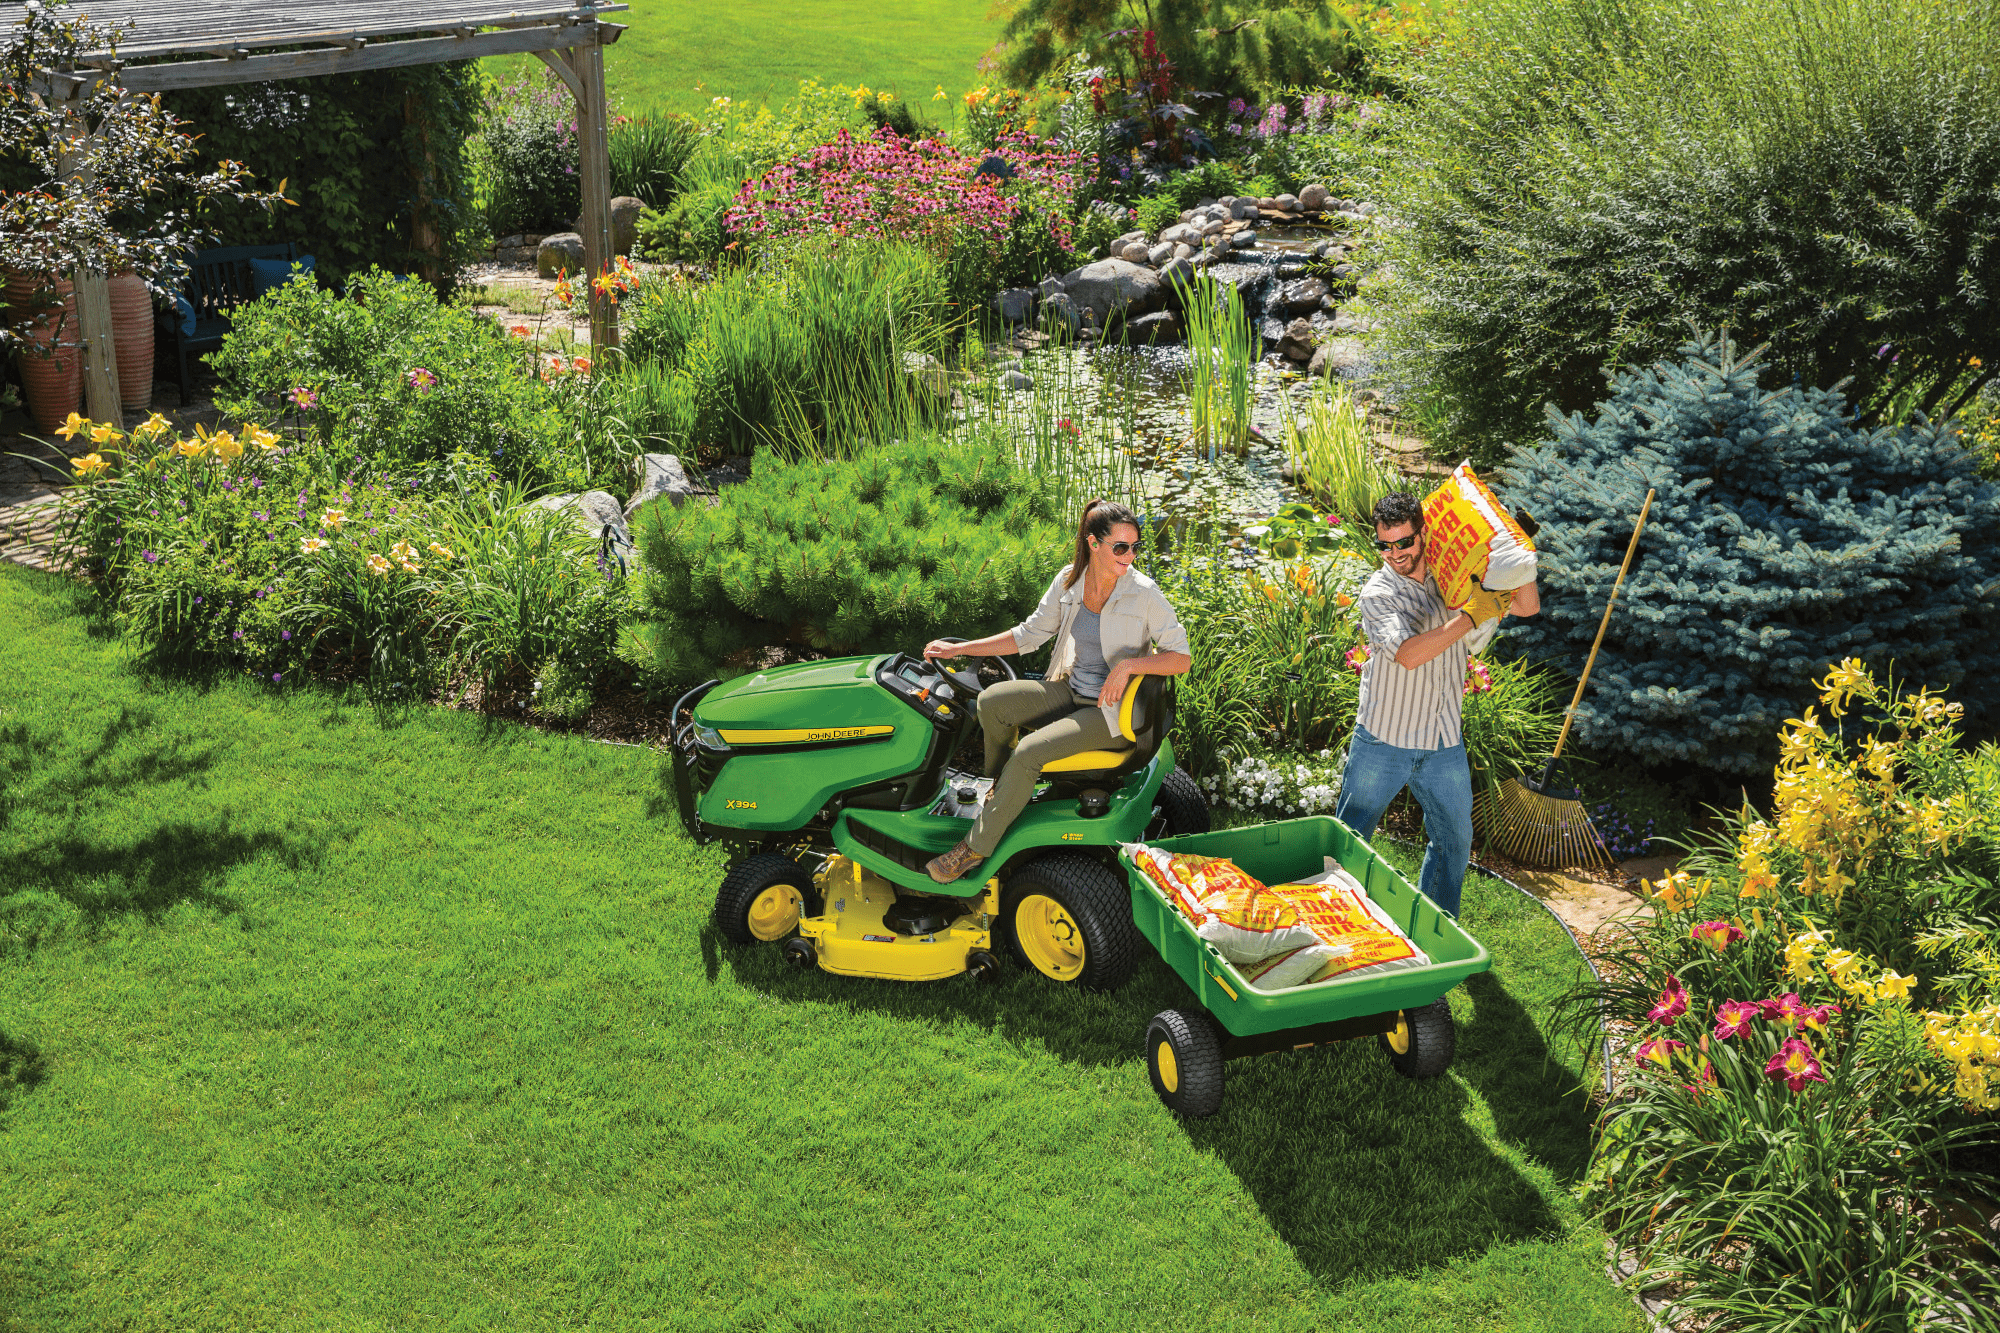 Man driving a John Deere lawn mower with pull behind trailer